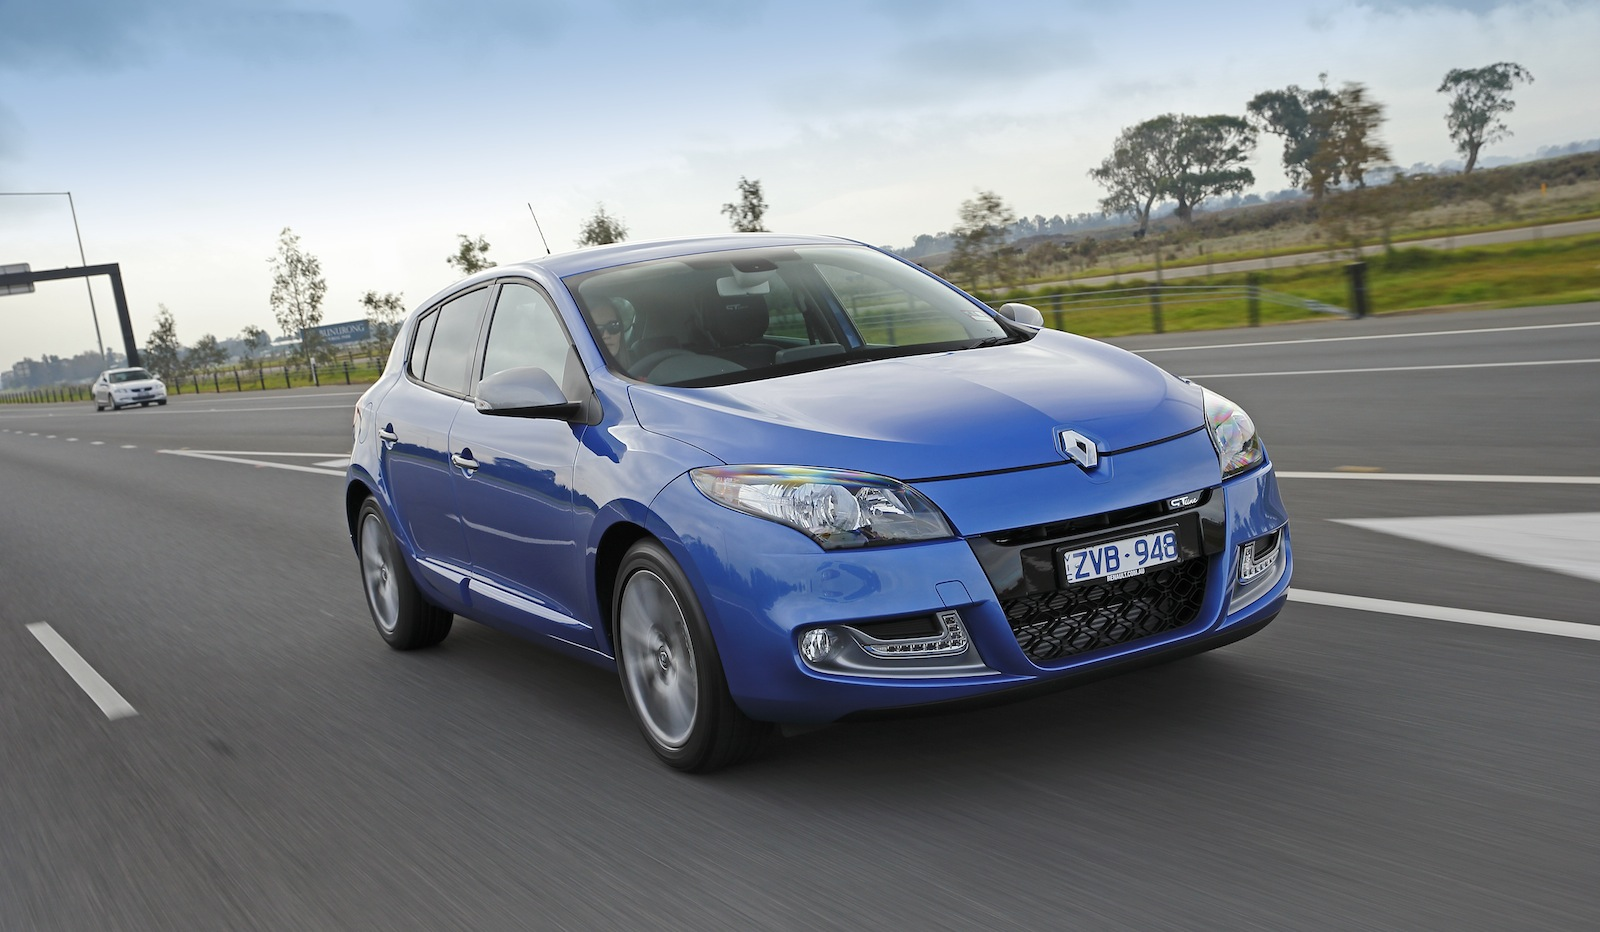 2013 renault megane review photos caradvice. Black Bedroom Furniture Sets. Home Design Ideas